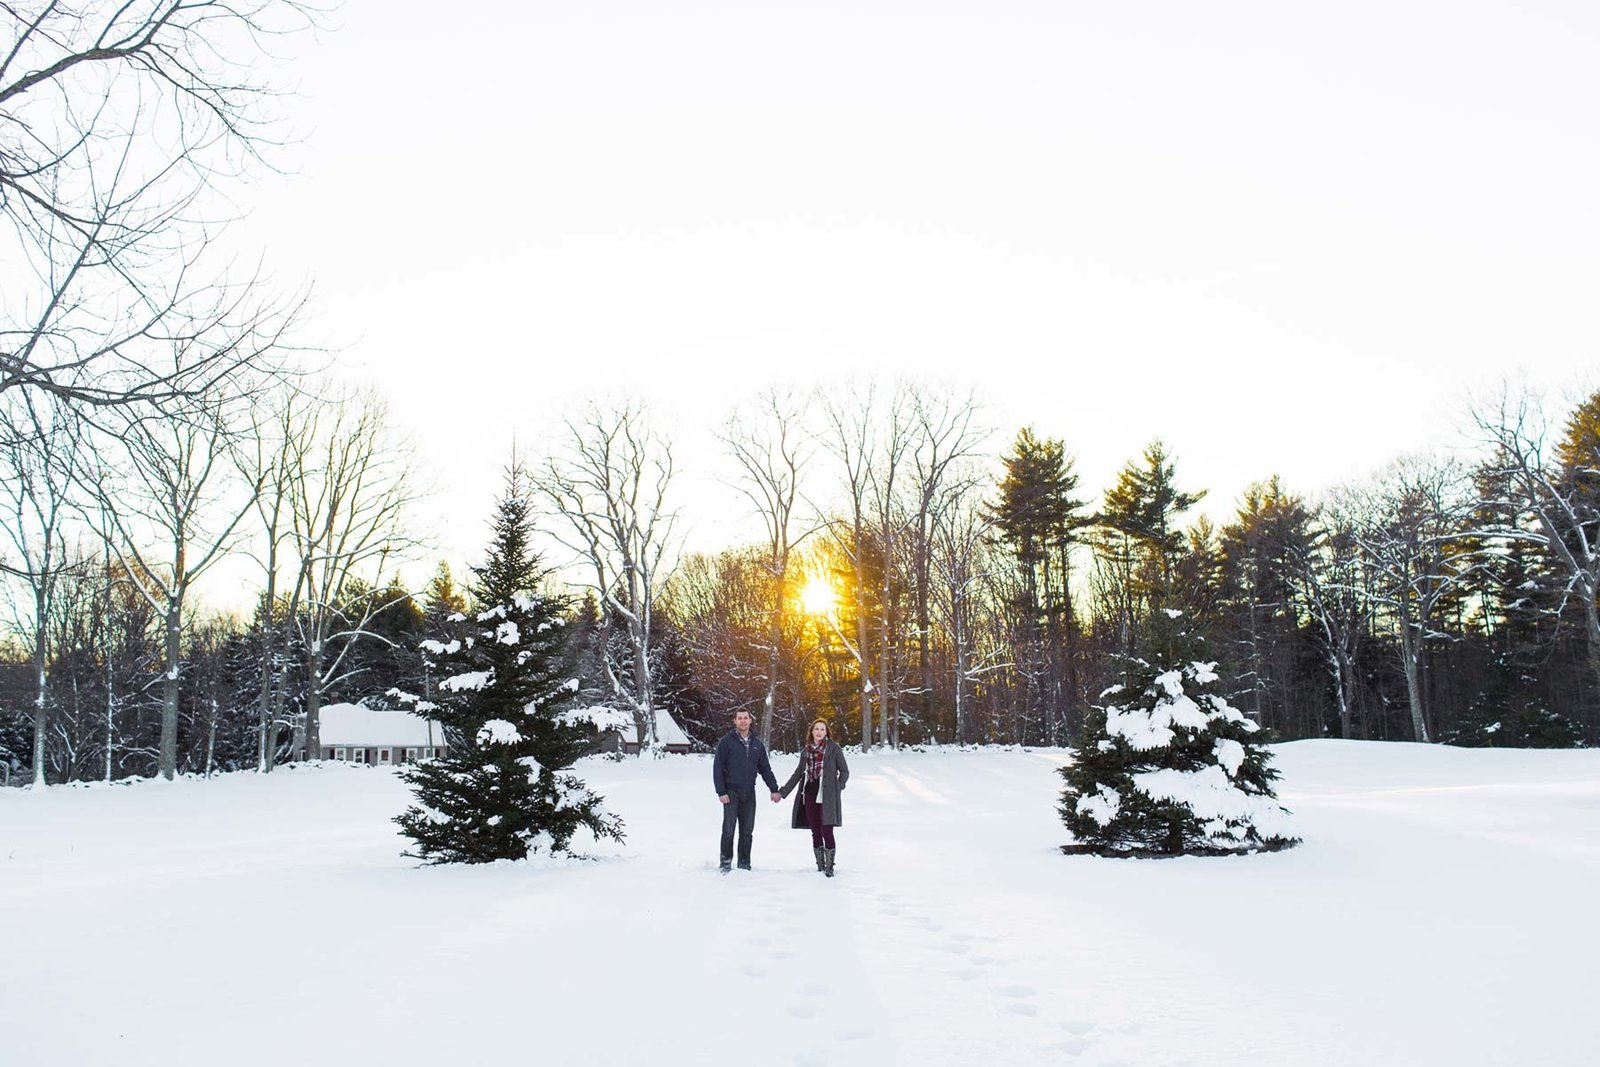 Newmarket New Hampshire Wedding Photographers Engagement Session Winter Image I am Sarah V Photography